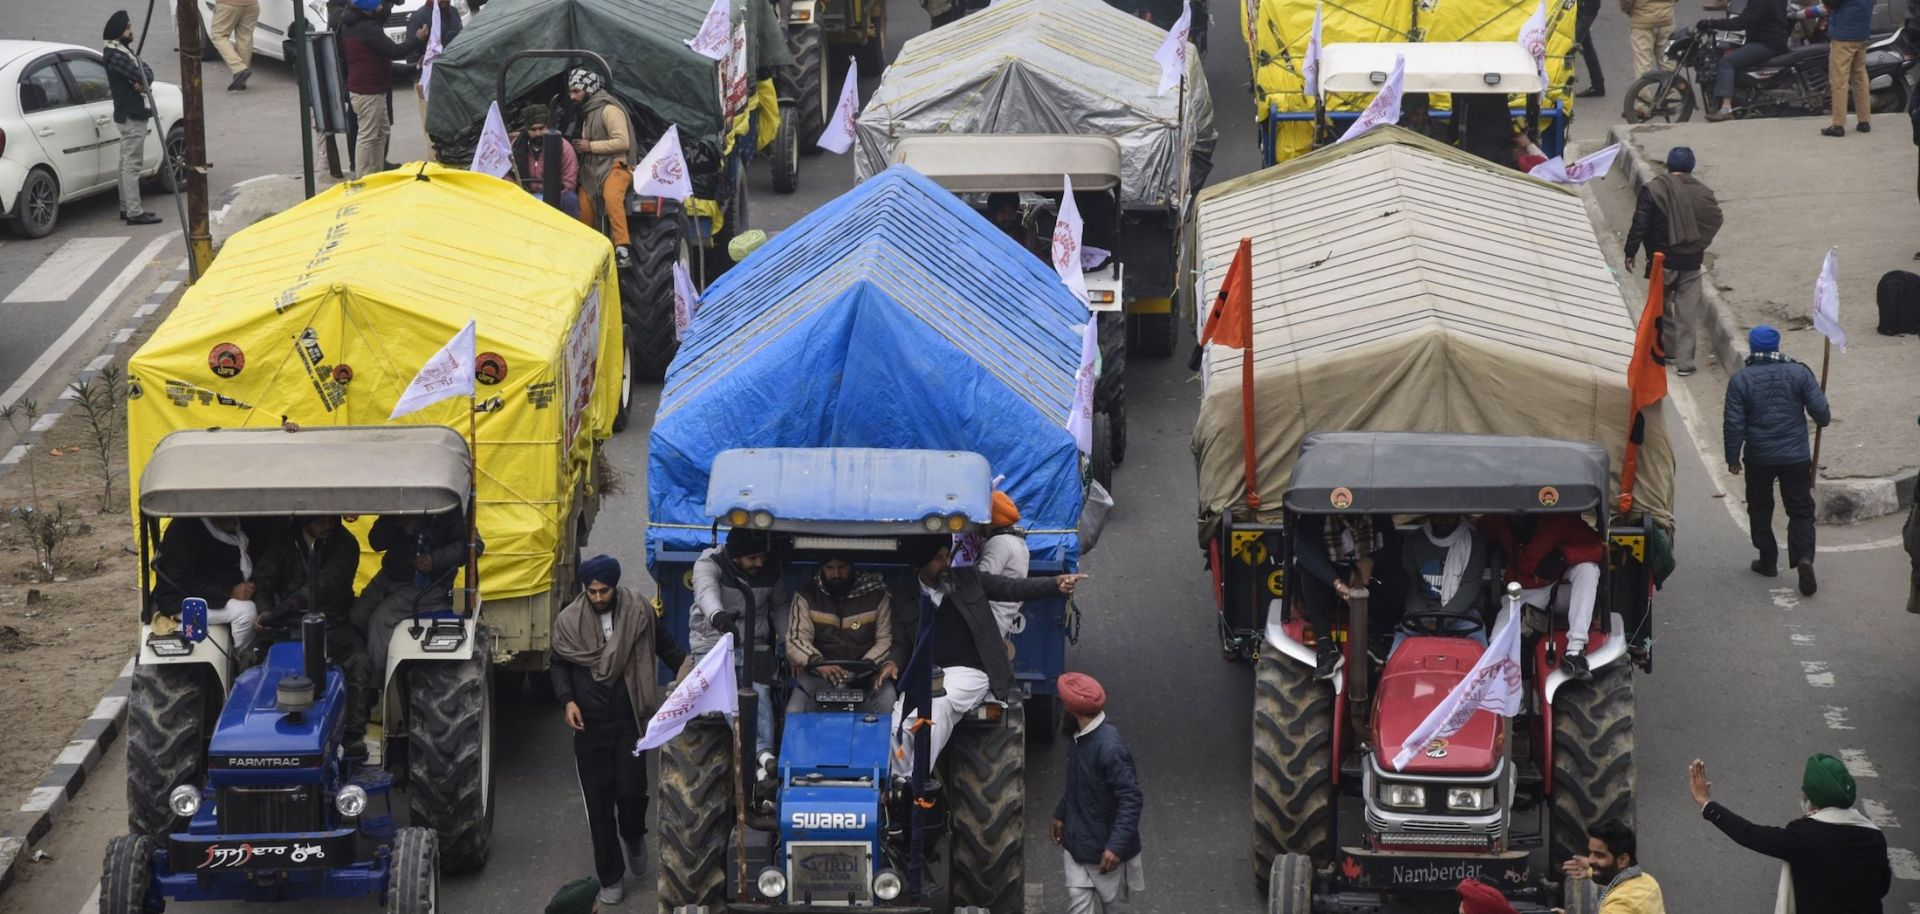 Farmers depart on their tractors to New Delhi to participate in ongoing protests against the Indian government's new agricultural reforms in Amritsar, India, on Jan. 12, 2021.